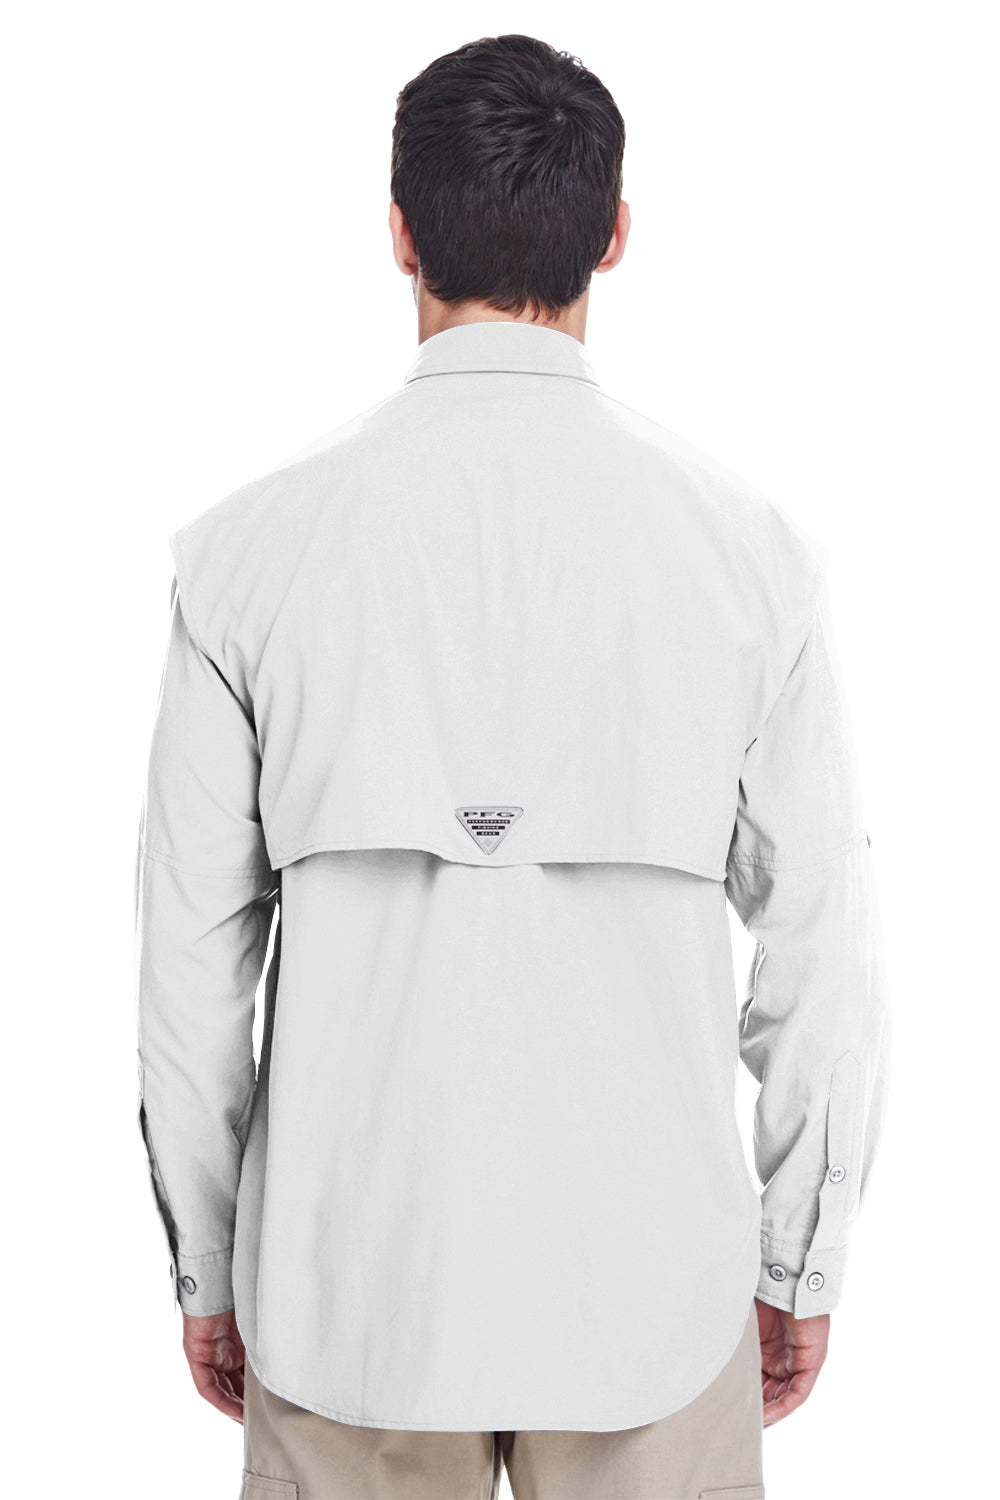 Columbia 7048 Mens Bahama II Moisture Wicking Long Sleeve Button Down Shirt w/ Double Pockets White Back